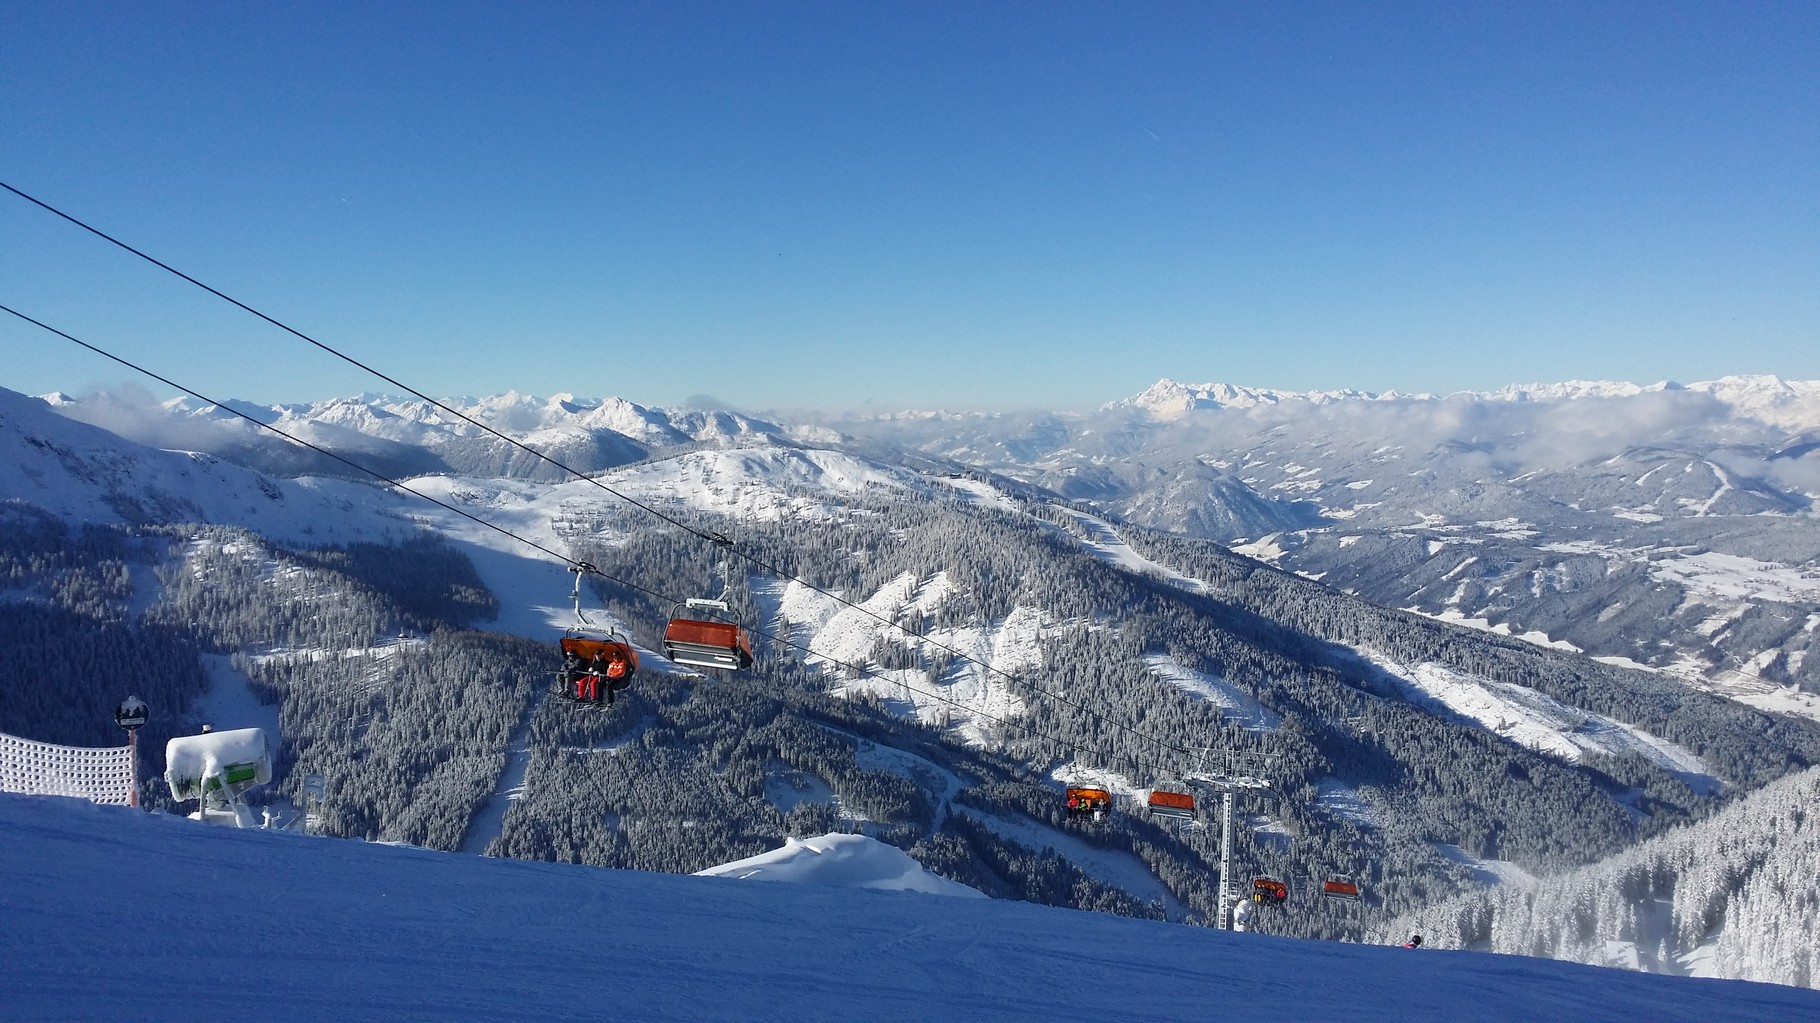 4 Mountain Area Schladming-Dachstein